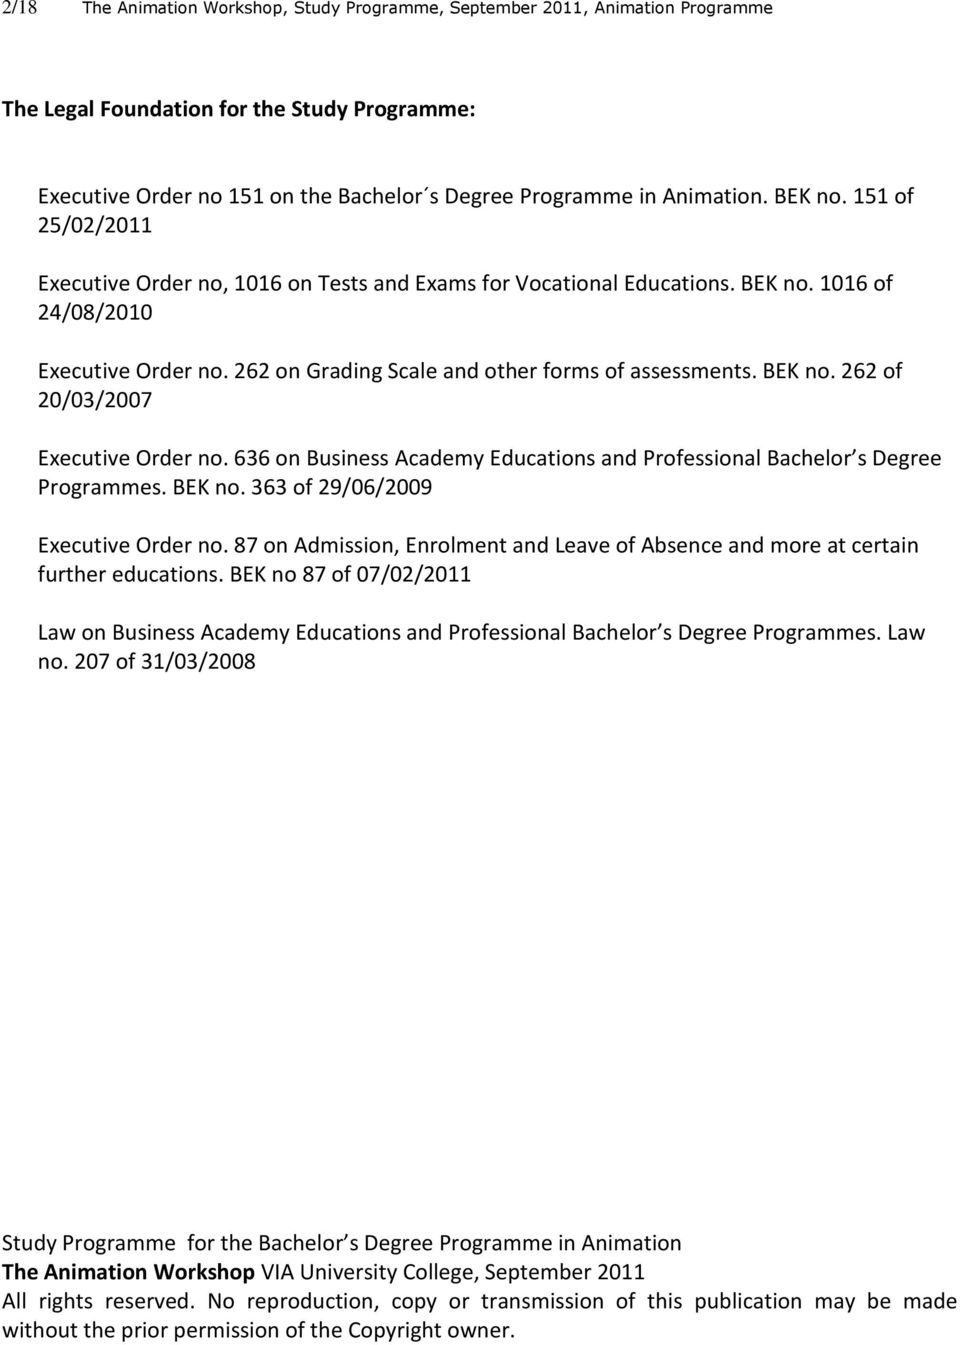 BEK no. 262 of 20/03/2007 Executive Order no. 636 on Business Academy Educations and Professional Bachelor s Degree Programmes. BEK no. 363 of 29/06/2009 Executive Order no.